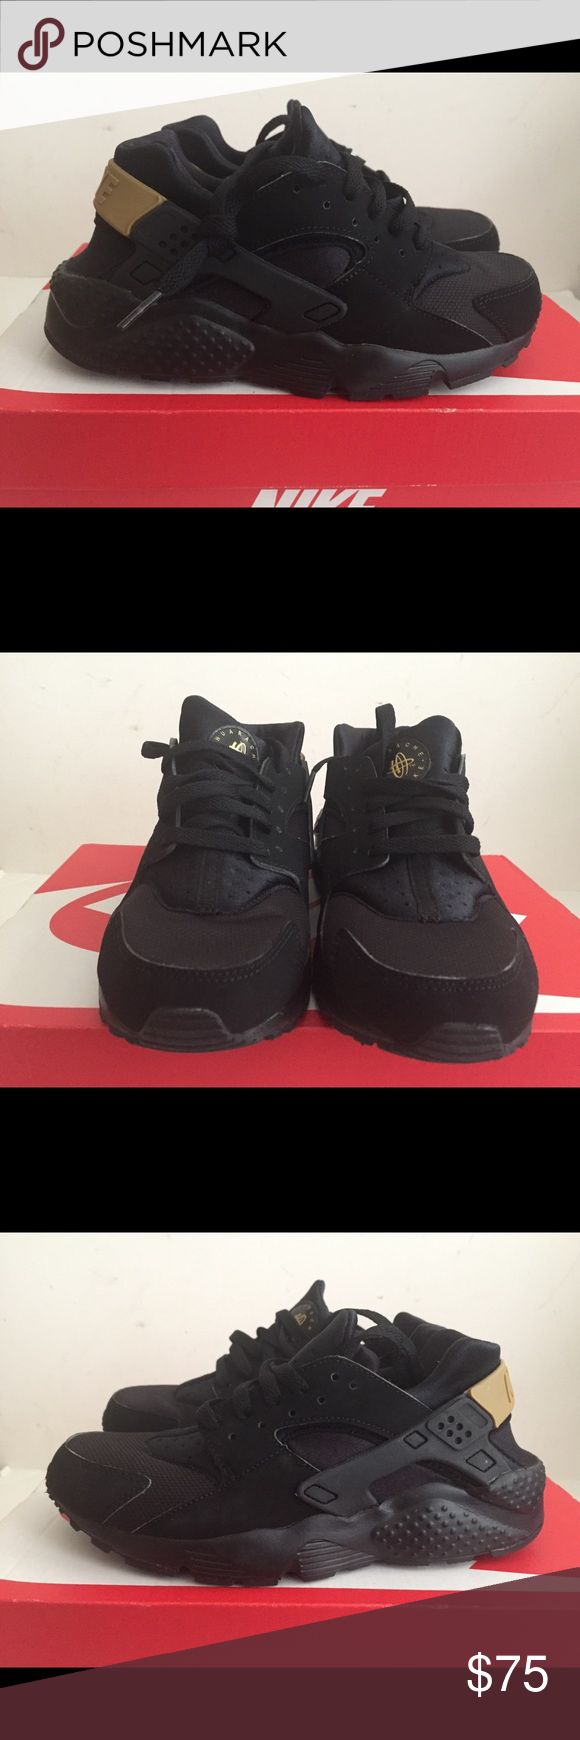 Nike Air huarache Run Black Gold size 6y Brand new with box kids size 6y or  women's size 7.5 No trades and the price is firm nike Shoes Athletic Shoes